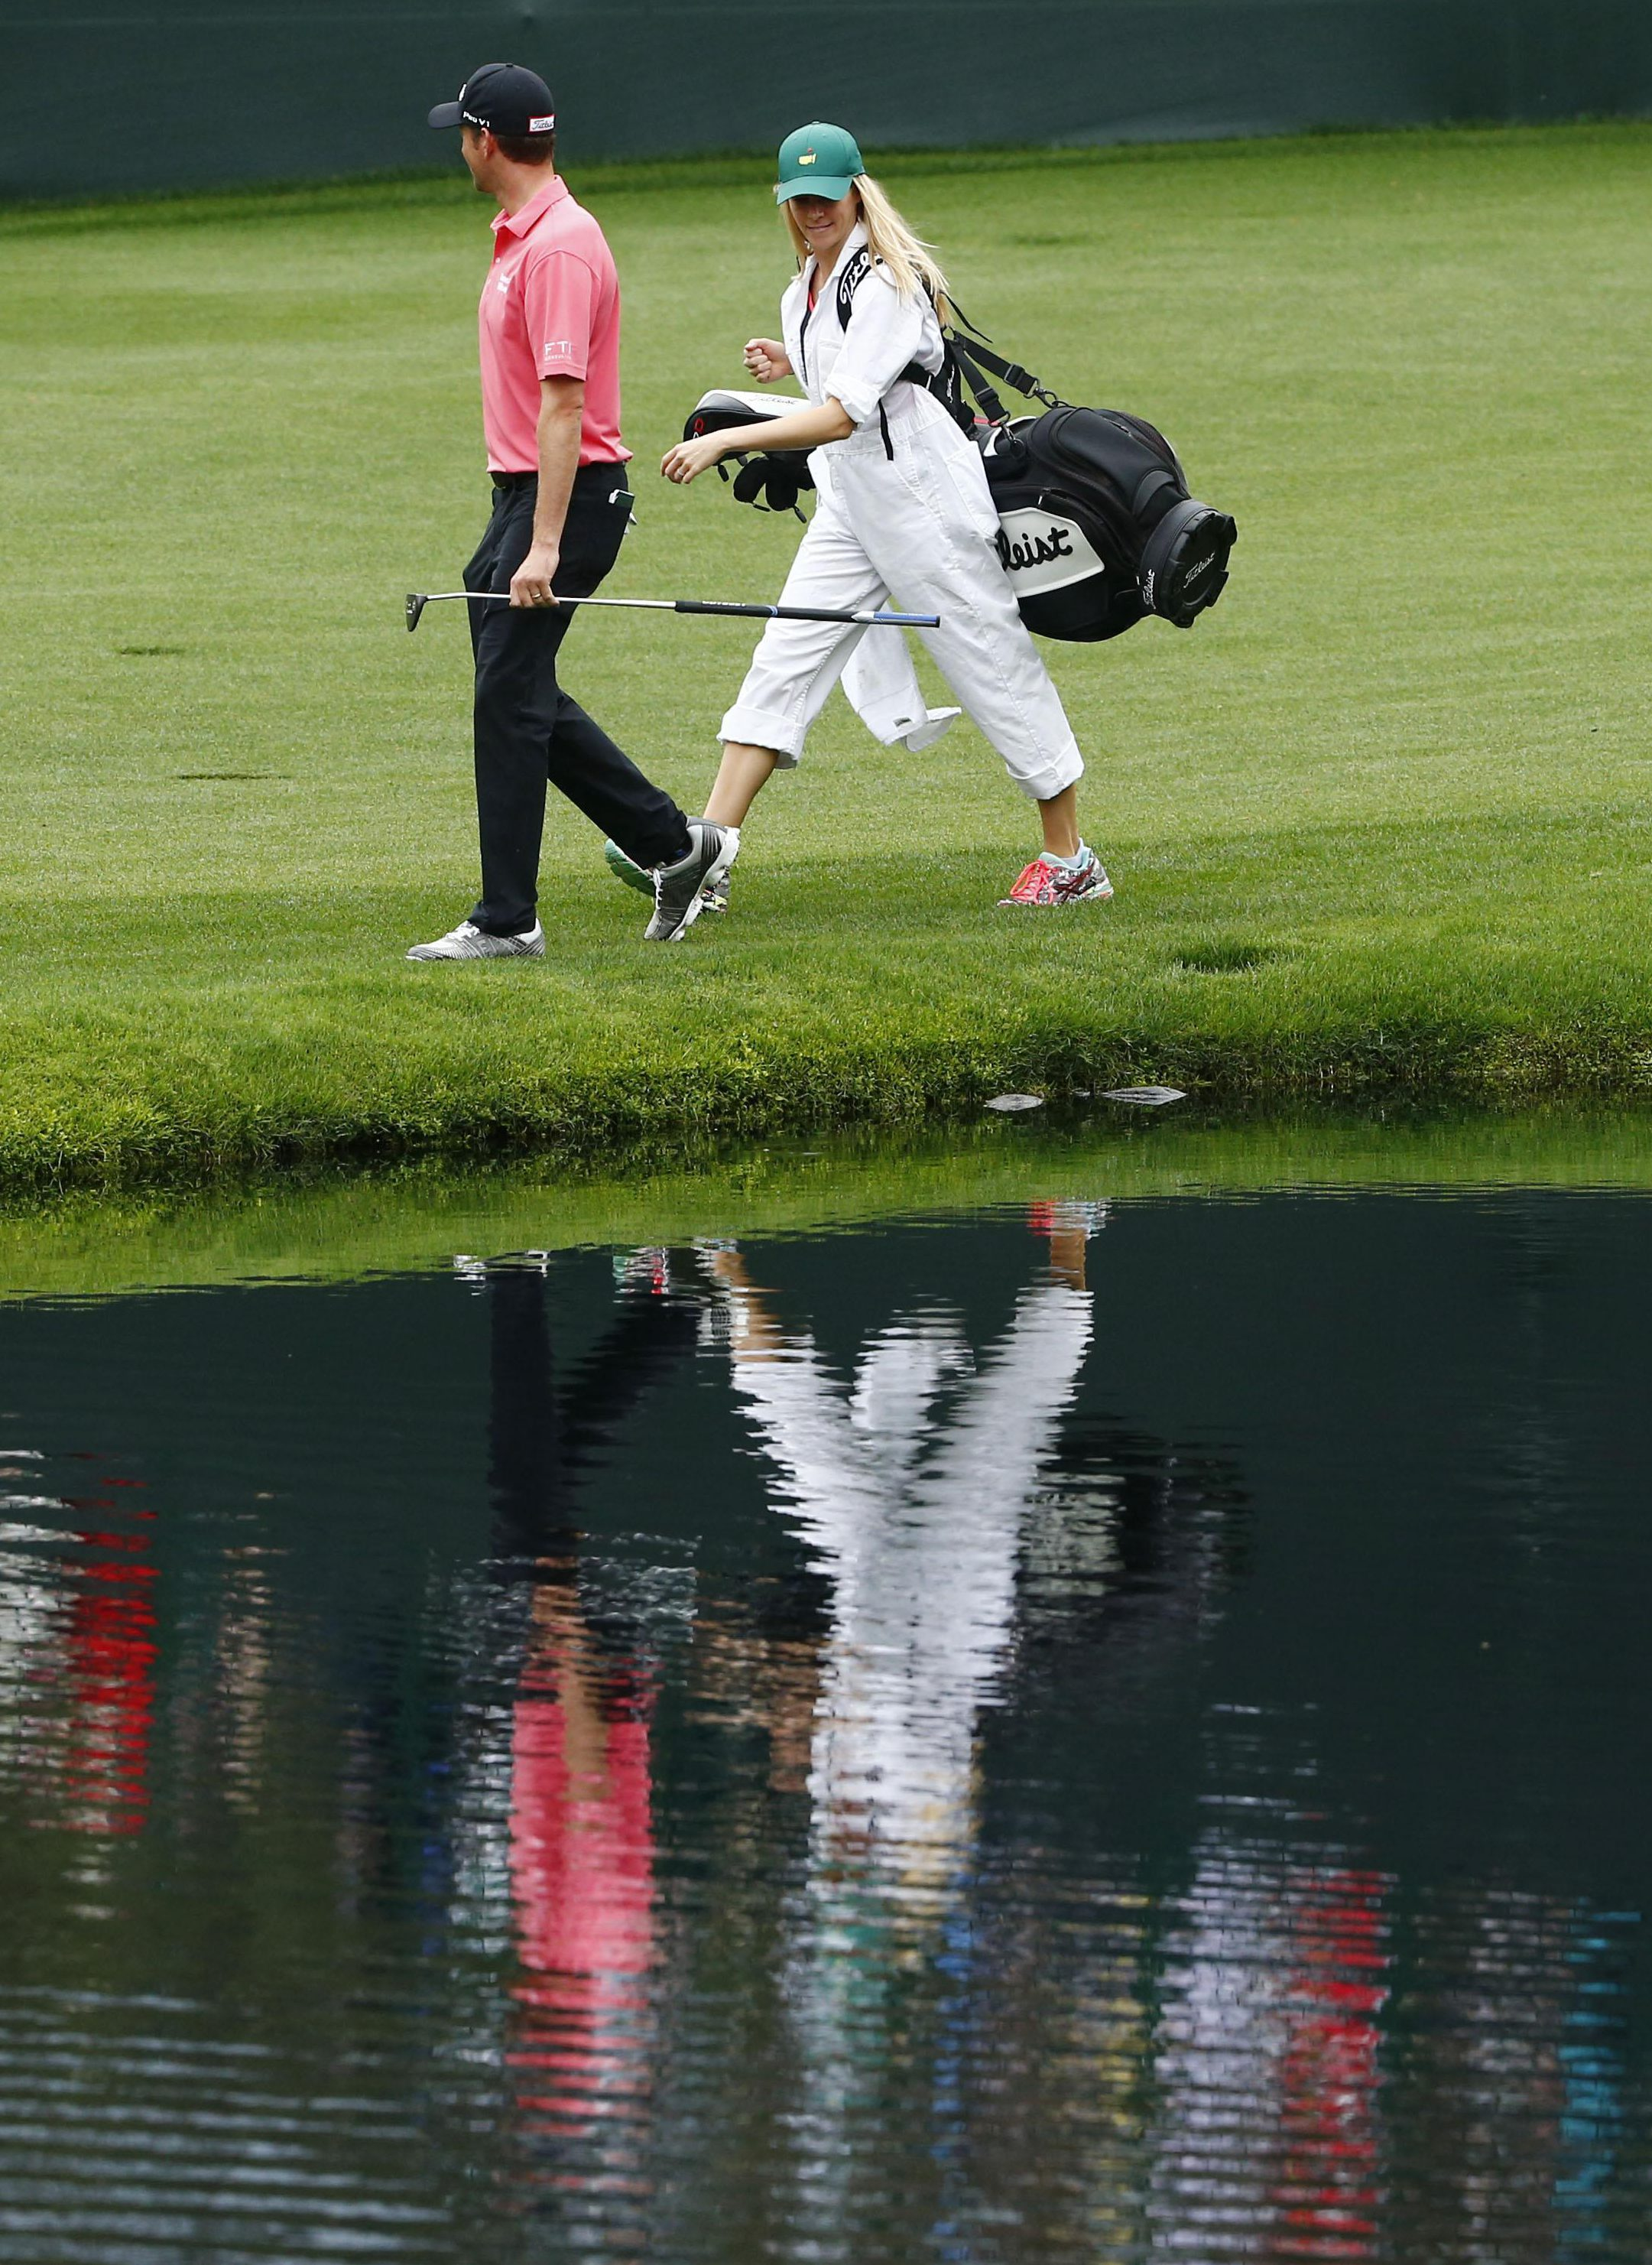 Webb and Dowd Simpson avoid the hazards in the run-up to The Masters